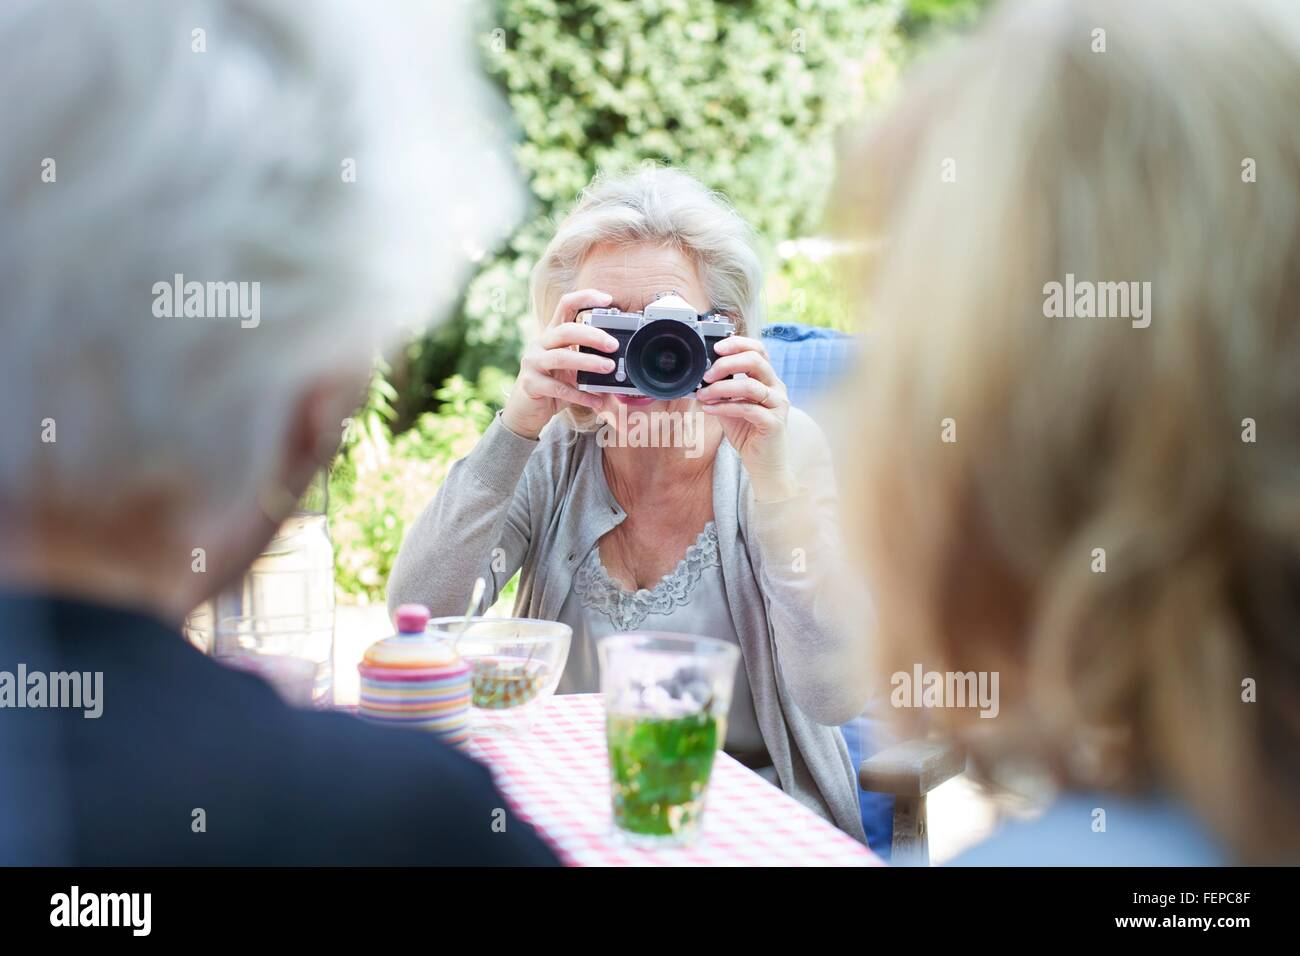 Senior woman, taking photograph of friends in garden - Stock Image